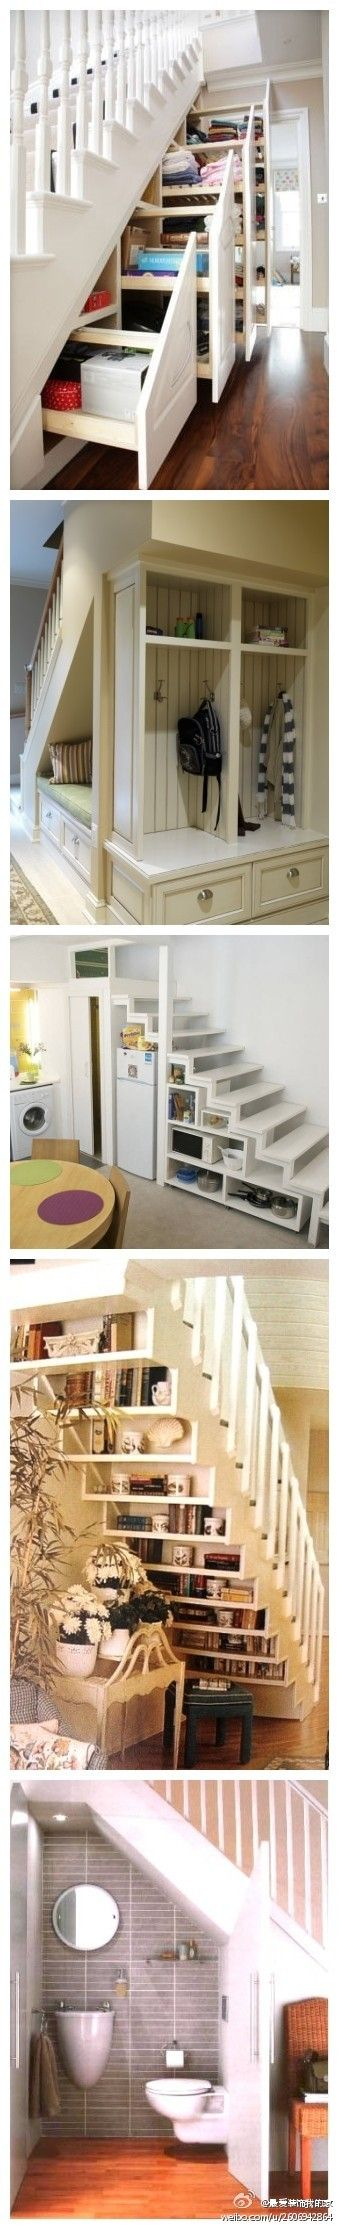 Love the use of such a small space!